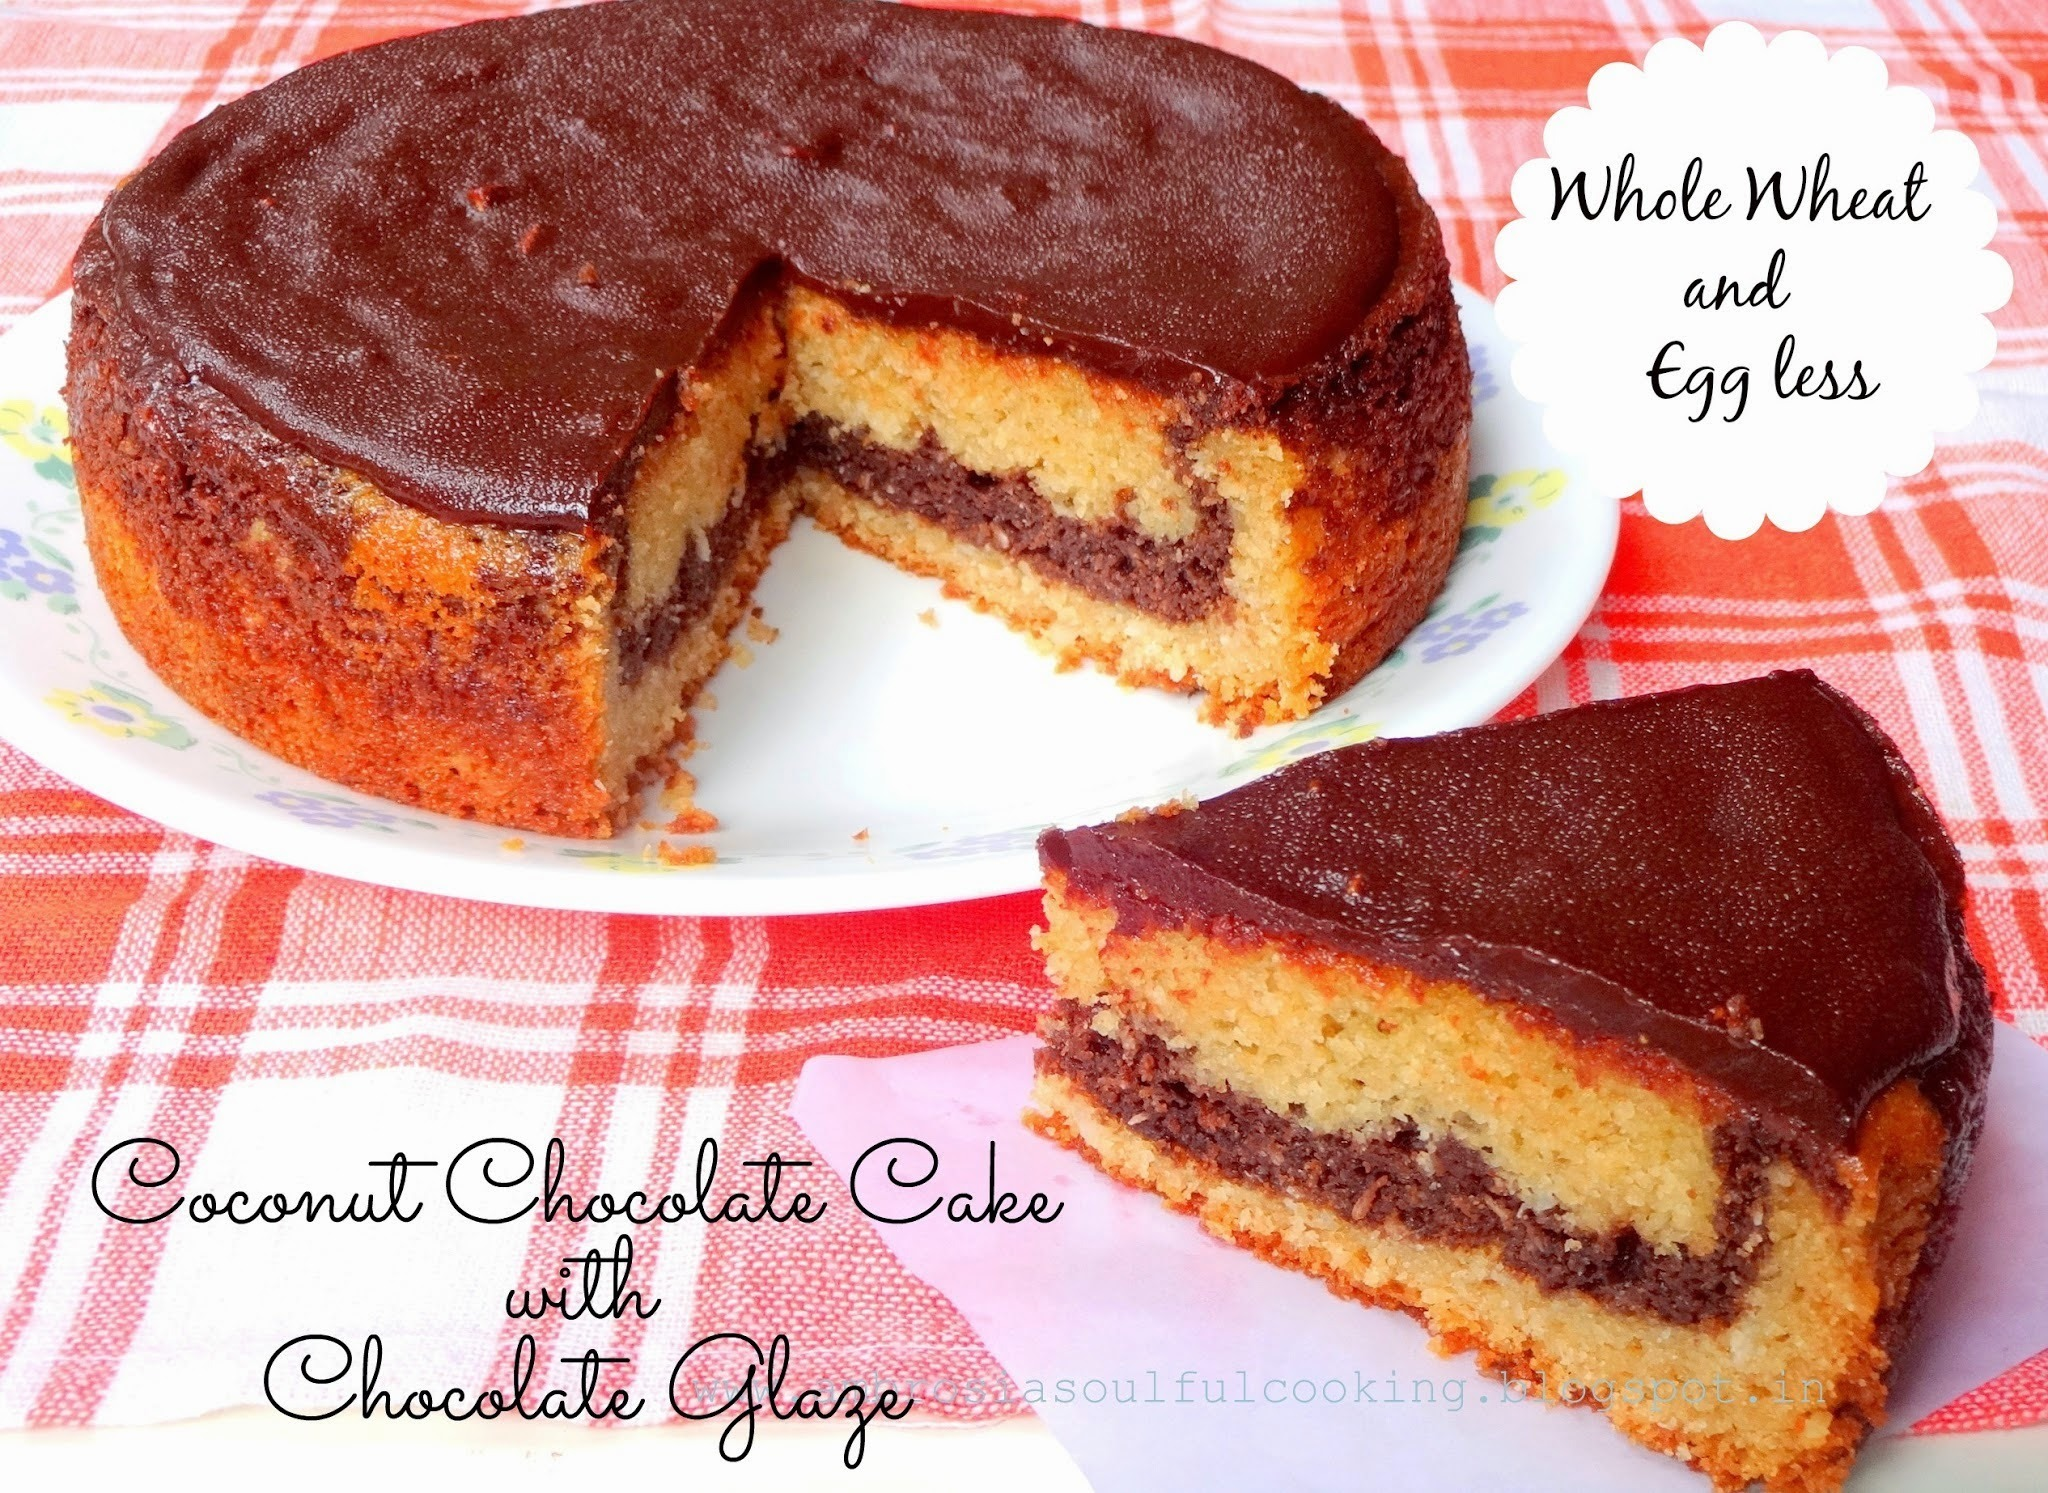 Egg less Coconut Chocolate Cake With Chocolate Glaze  (Whole Wheat) | Egg less baking